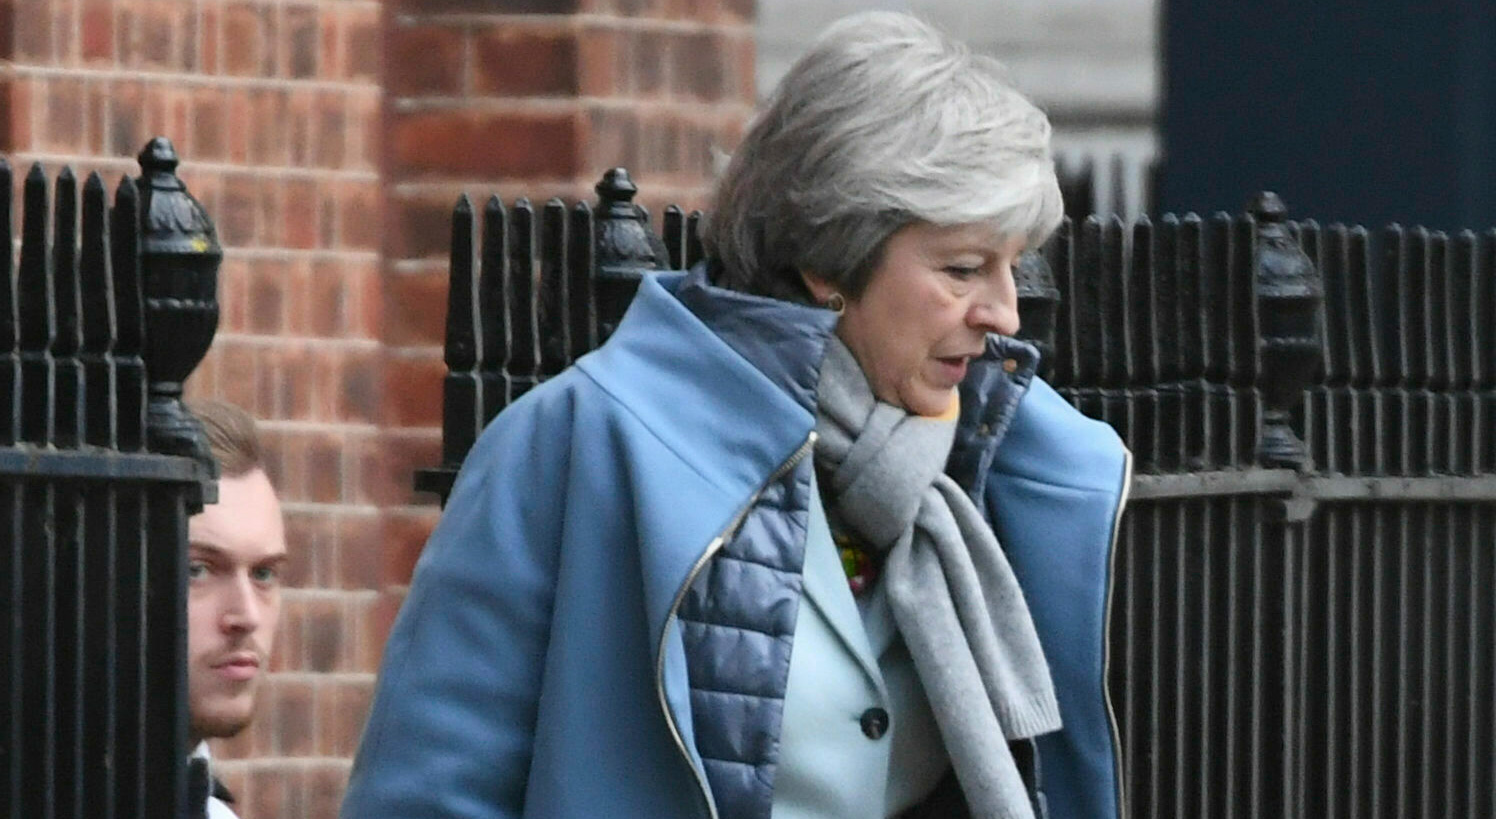 The path before Britain's prime minister, Theresa May, her party and her country seems to be riddled with potholes